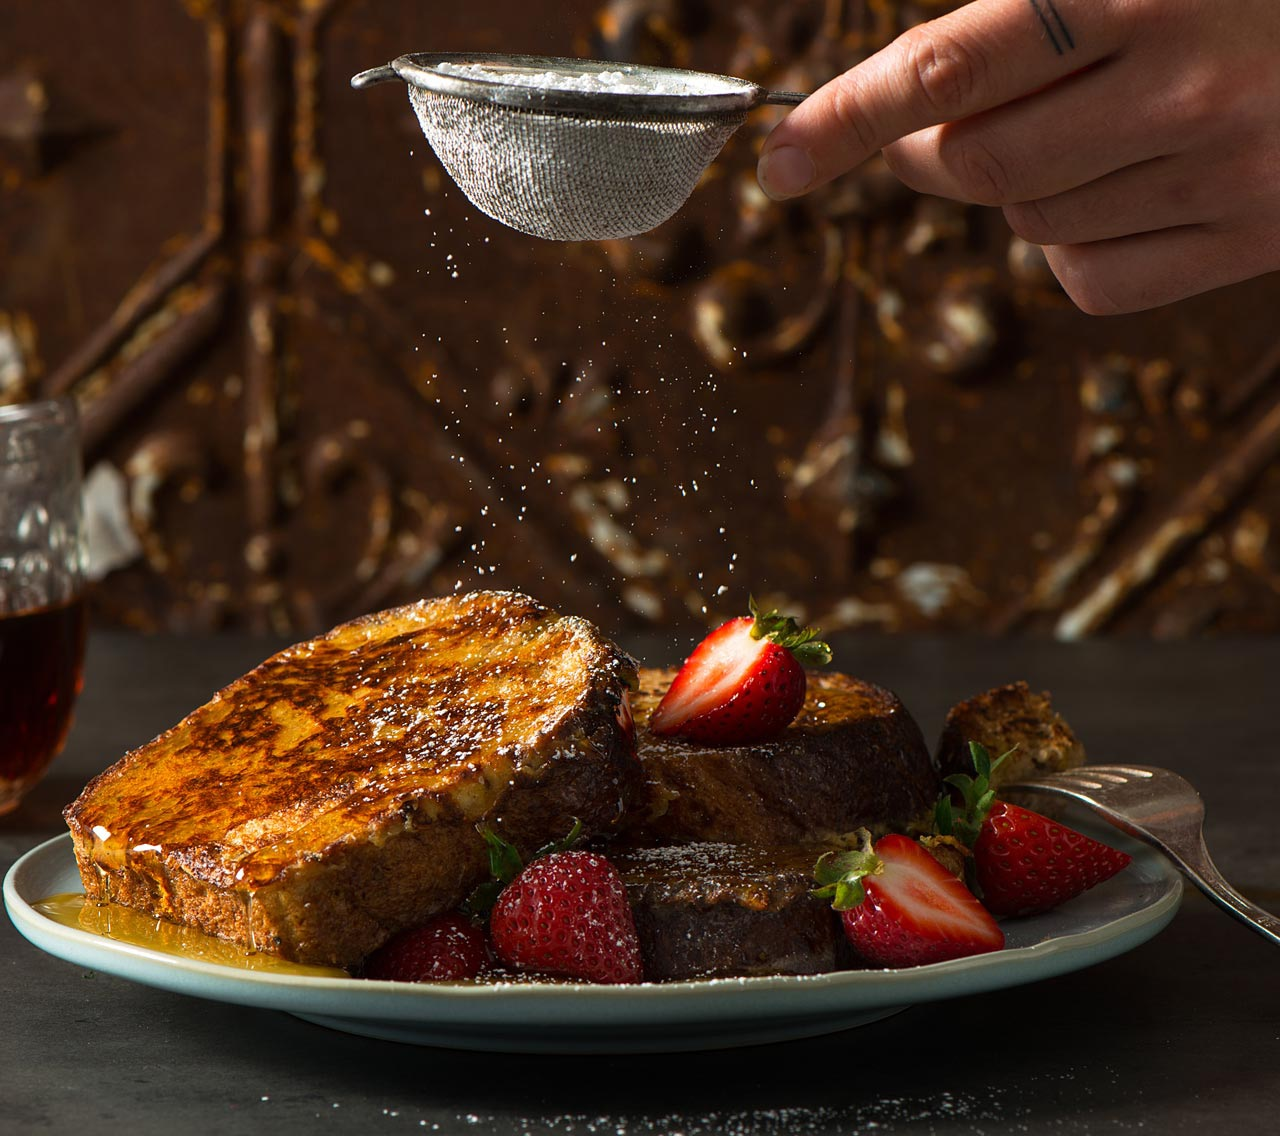 French Toast with Cinnamon & Vanilla